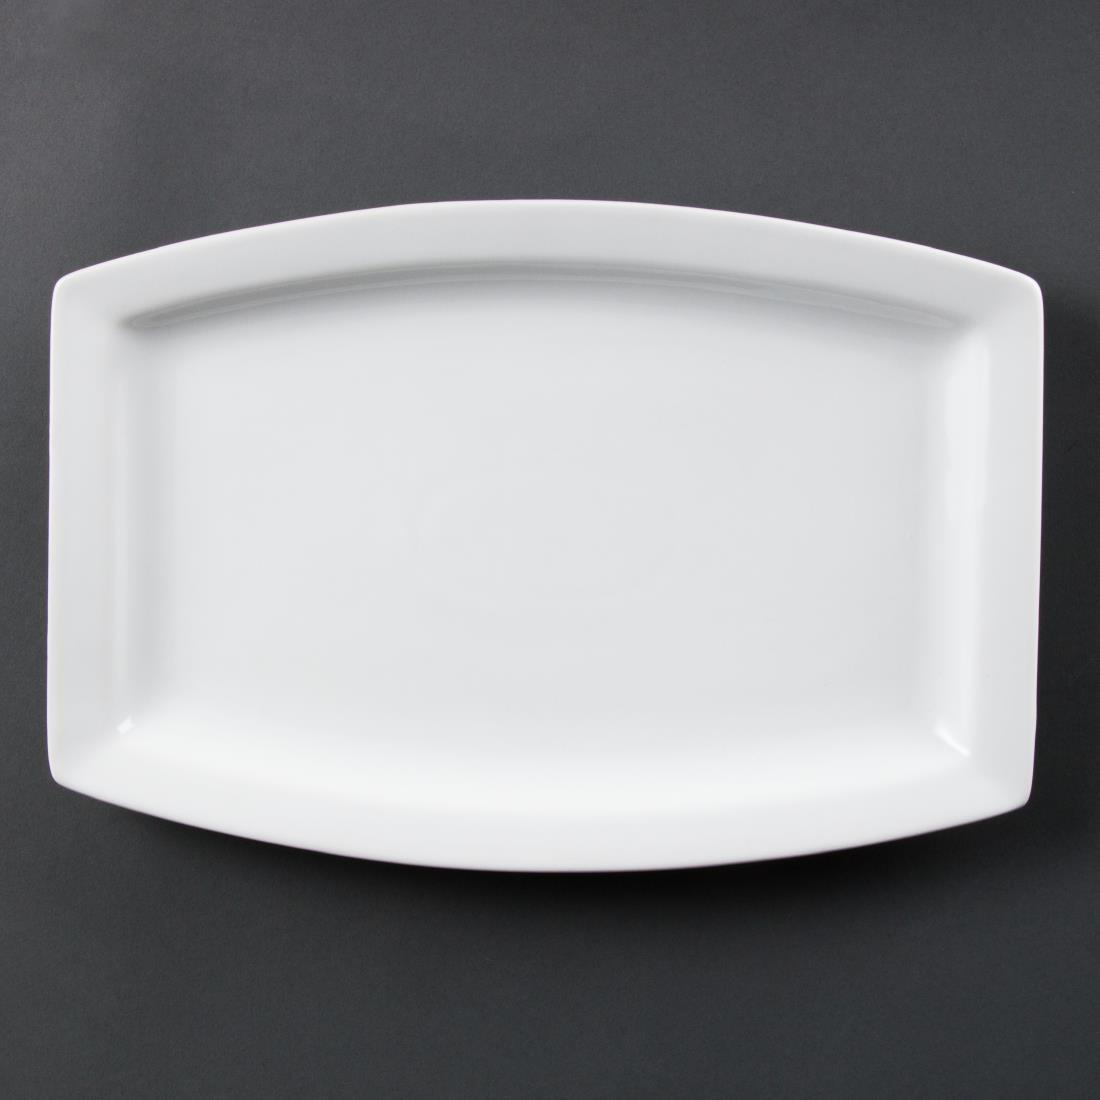 Olympia Whiteware Rectangular Plates 320mm